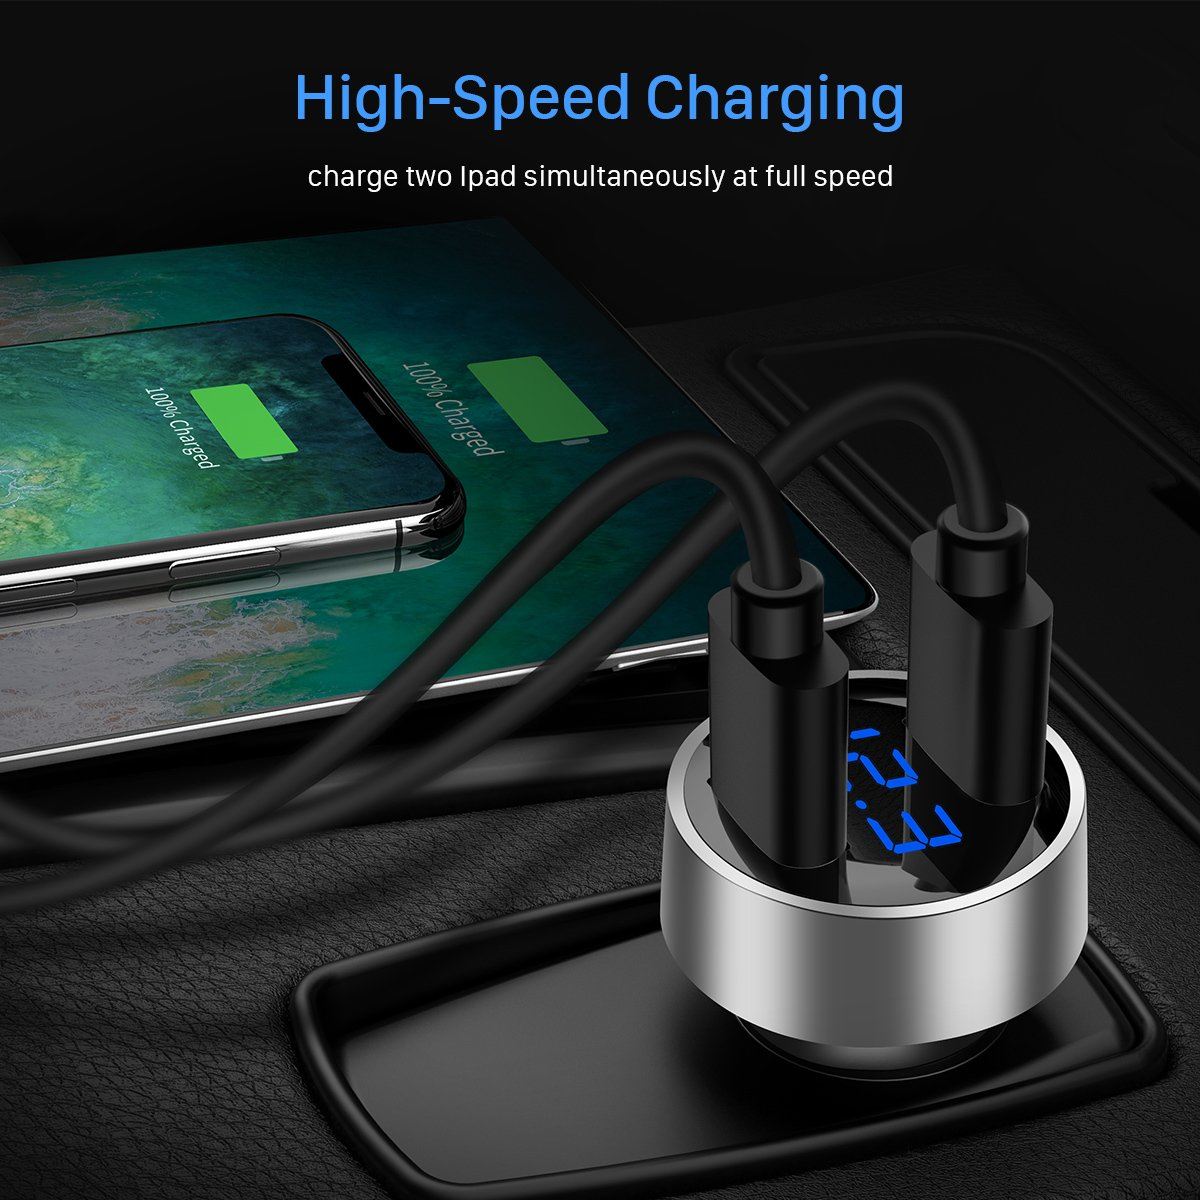 Car Charger, Ainope 4.8A Car Charger Adapter Metal Dual USB Car Charger LED Display Car Voltage Detector Flush Fit for Phone X/ 8/7/ 6s/ Plus, iPad Air 2/ mini 3, Samsung Note 9/ Galaxy S9/ S8- Silver by Ainope (Image #3)